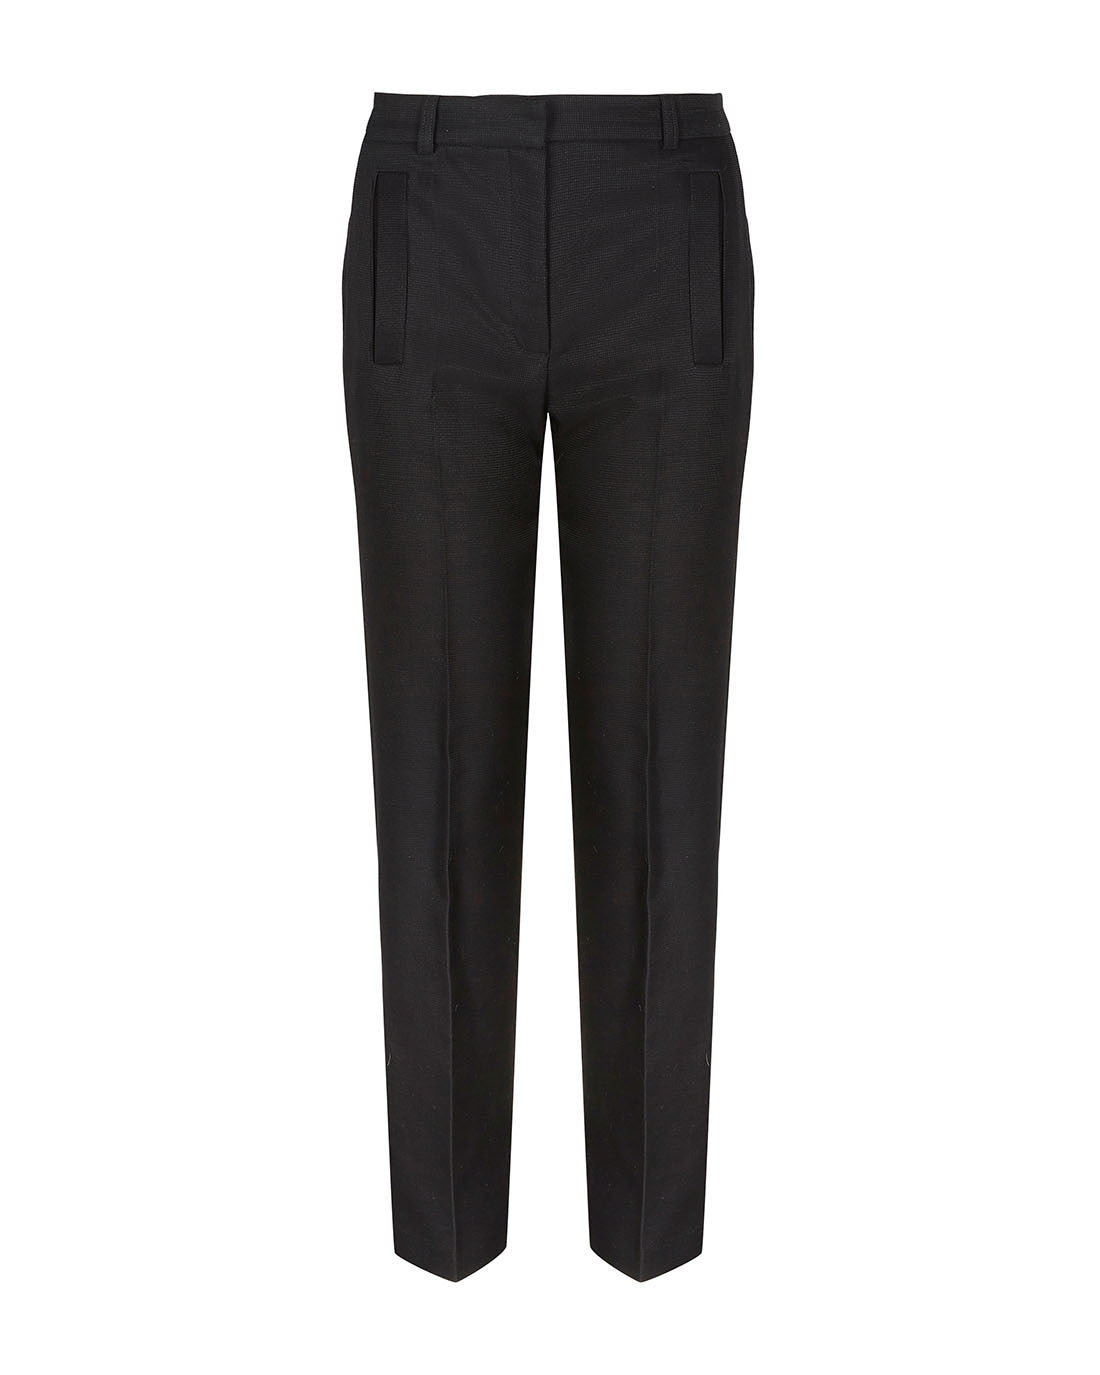 Luxury textured high rise wide leg wool silk trouser for the office black